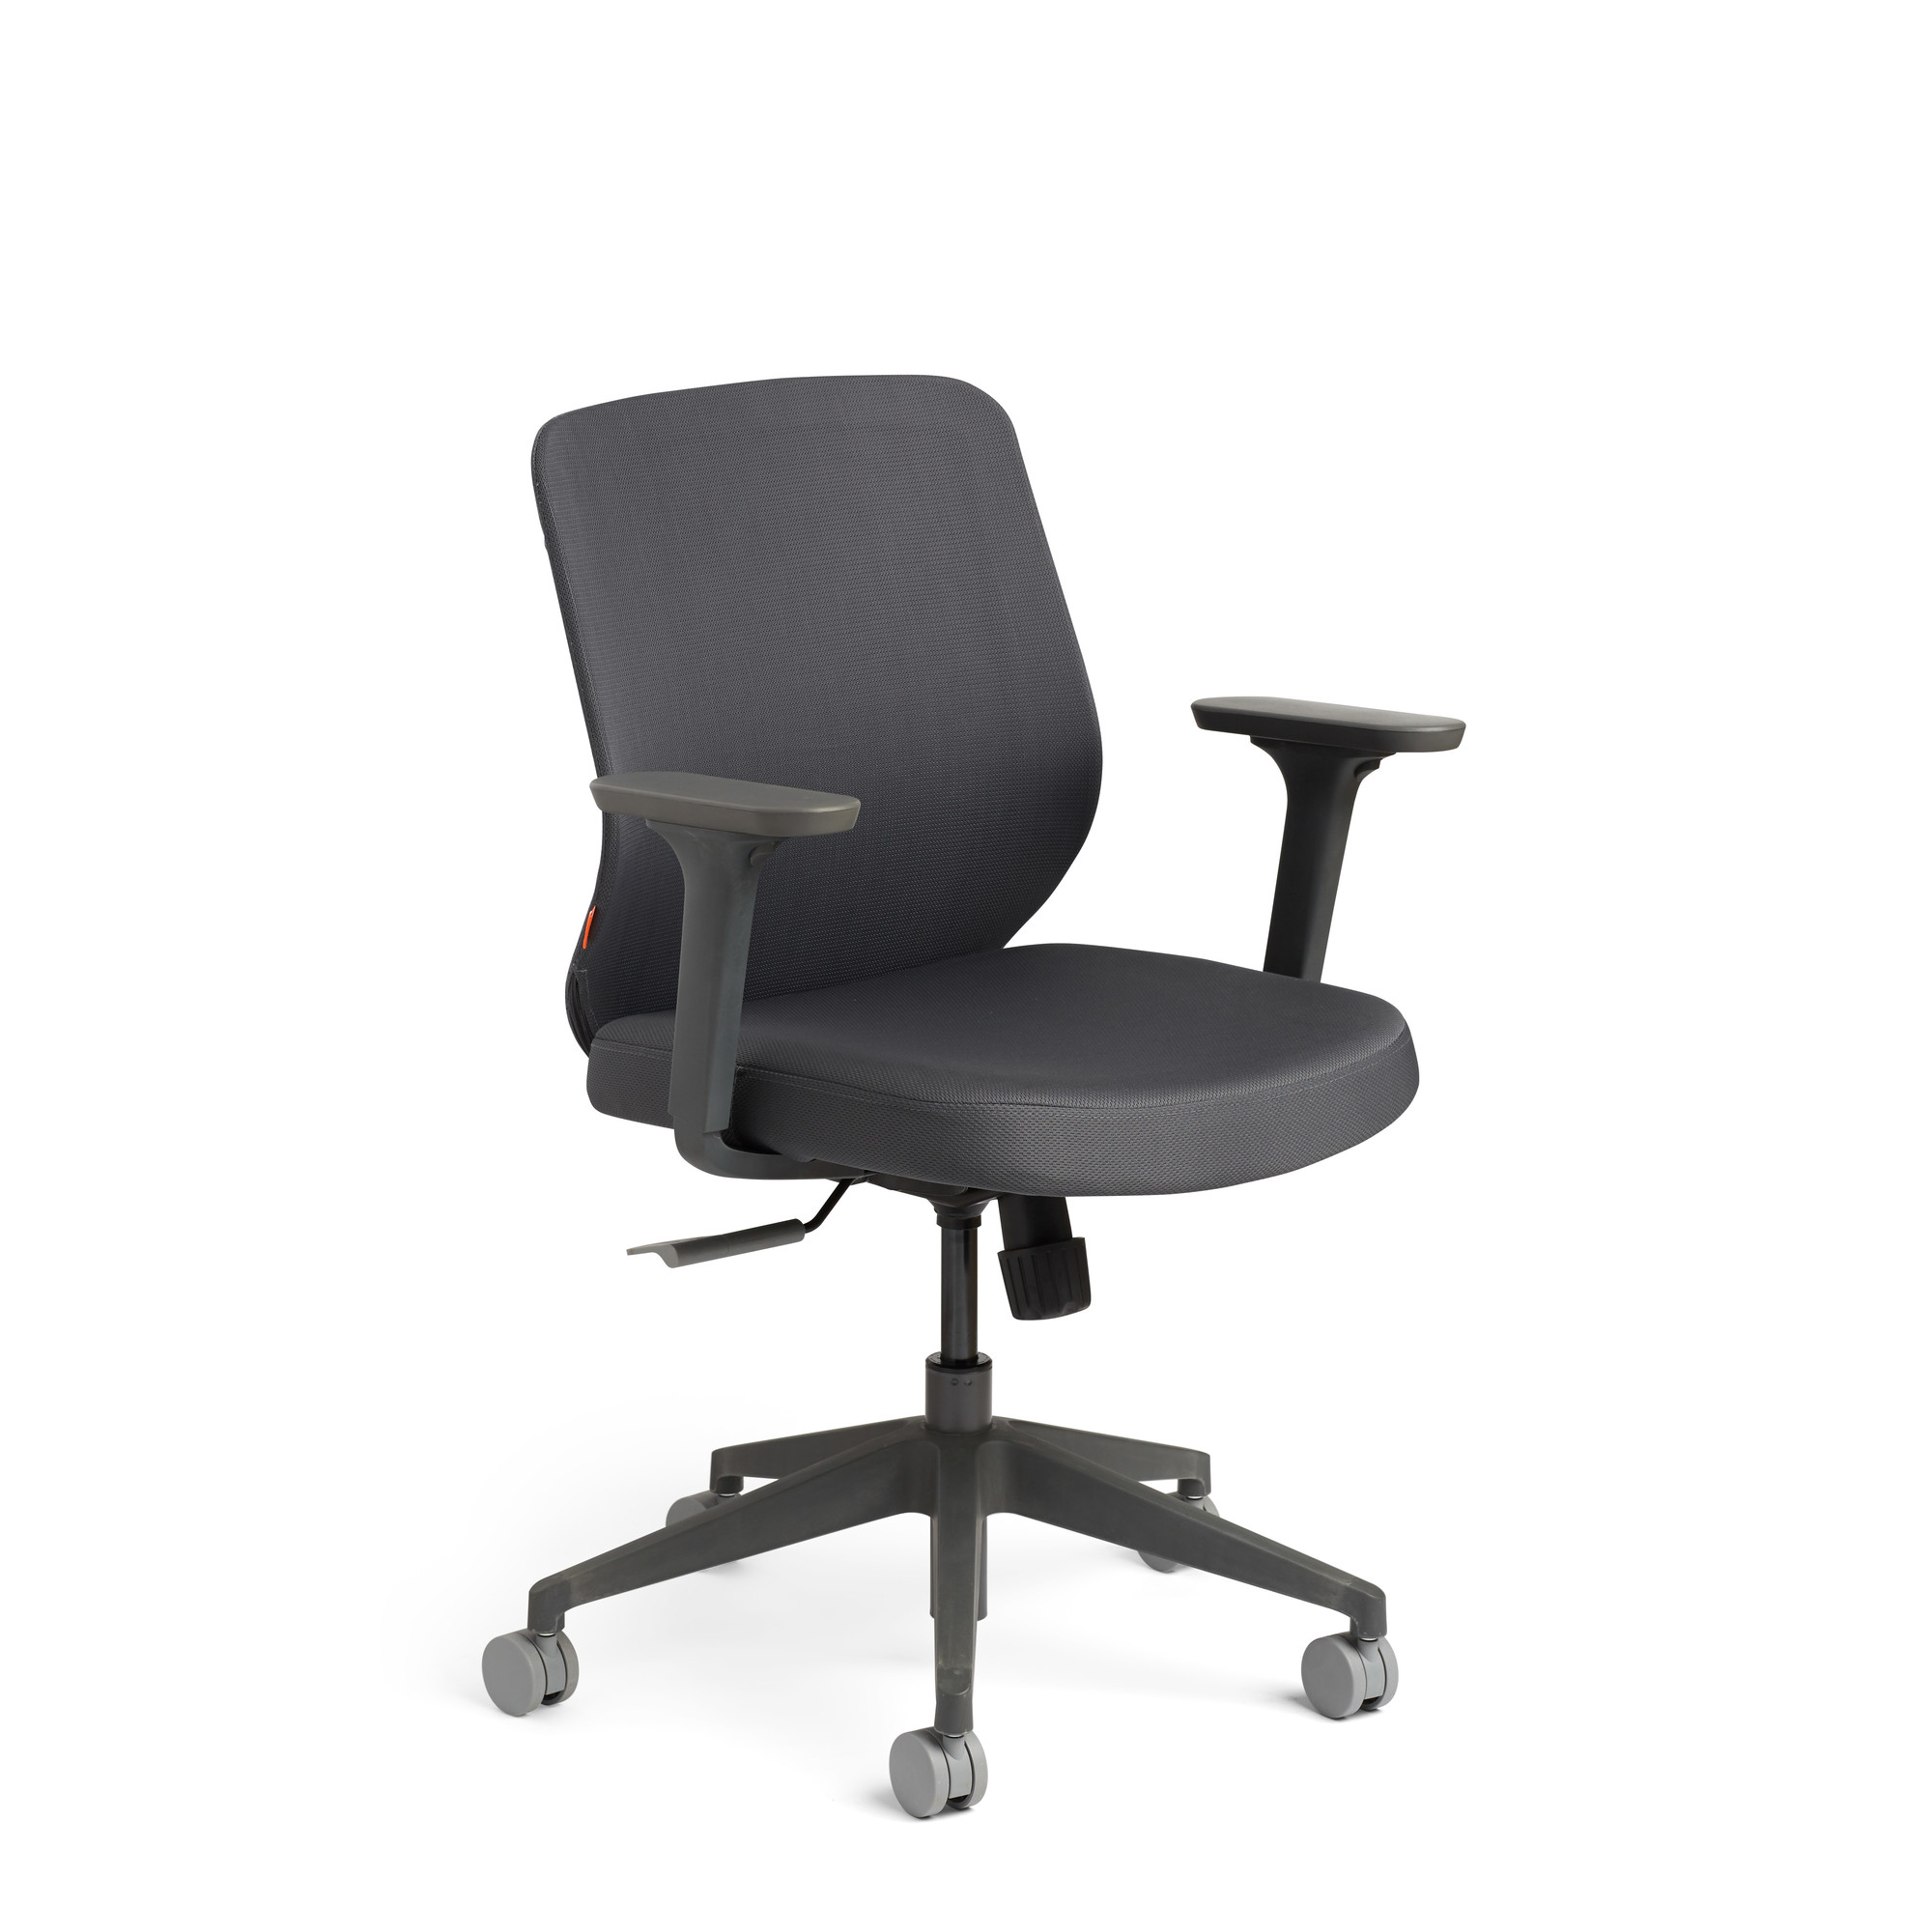 Work Chair Max Task Chair Charcoal Frame Modern Office Furniture Poppin